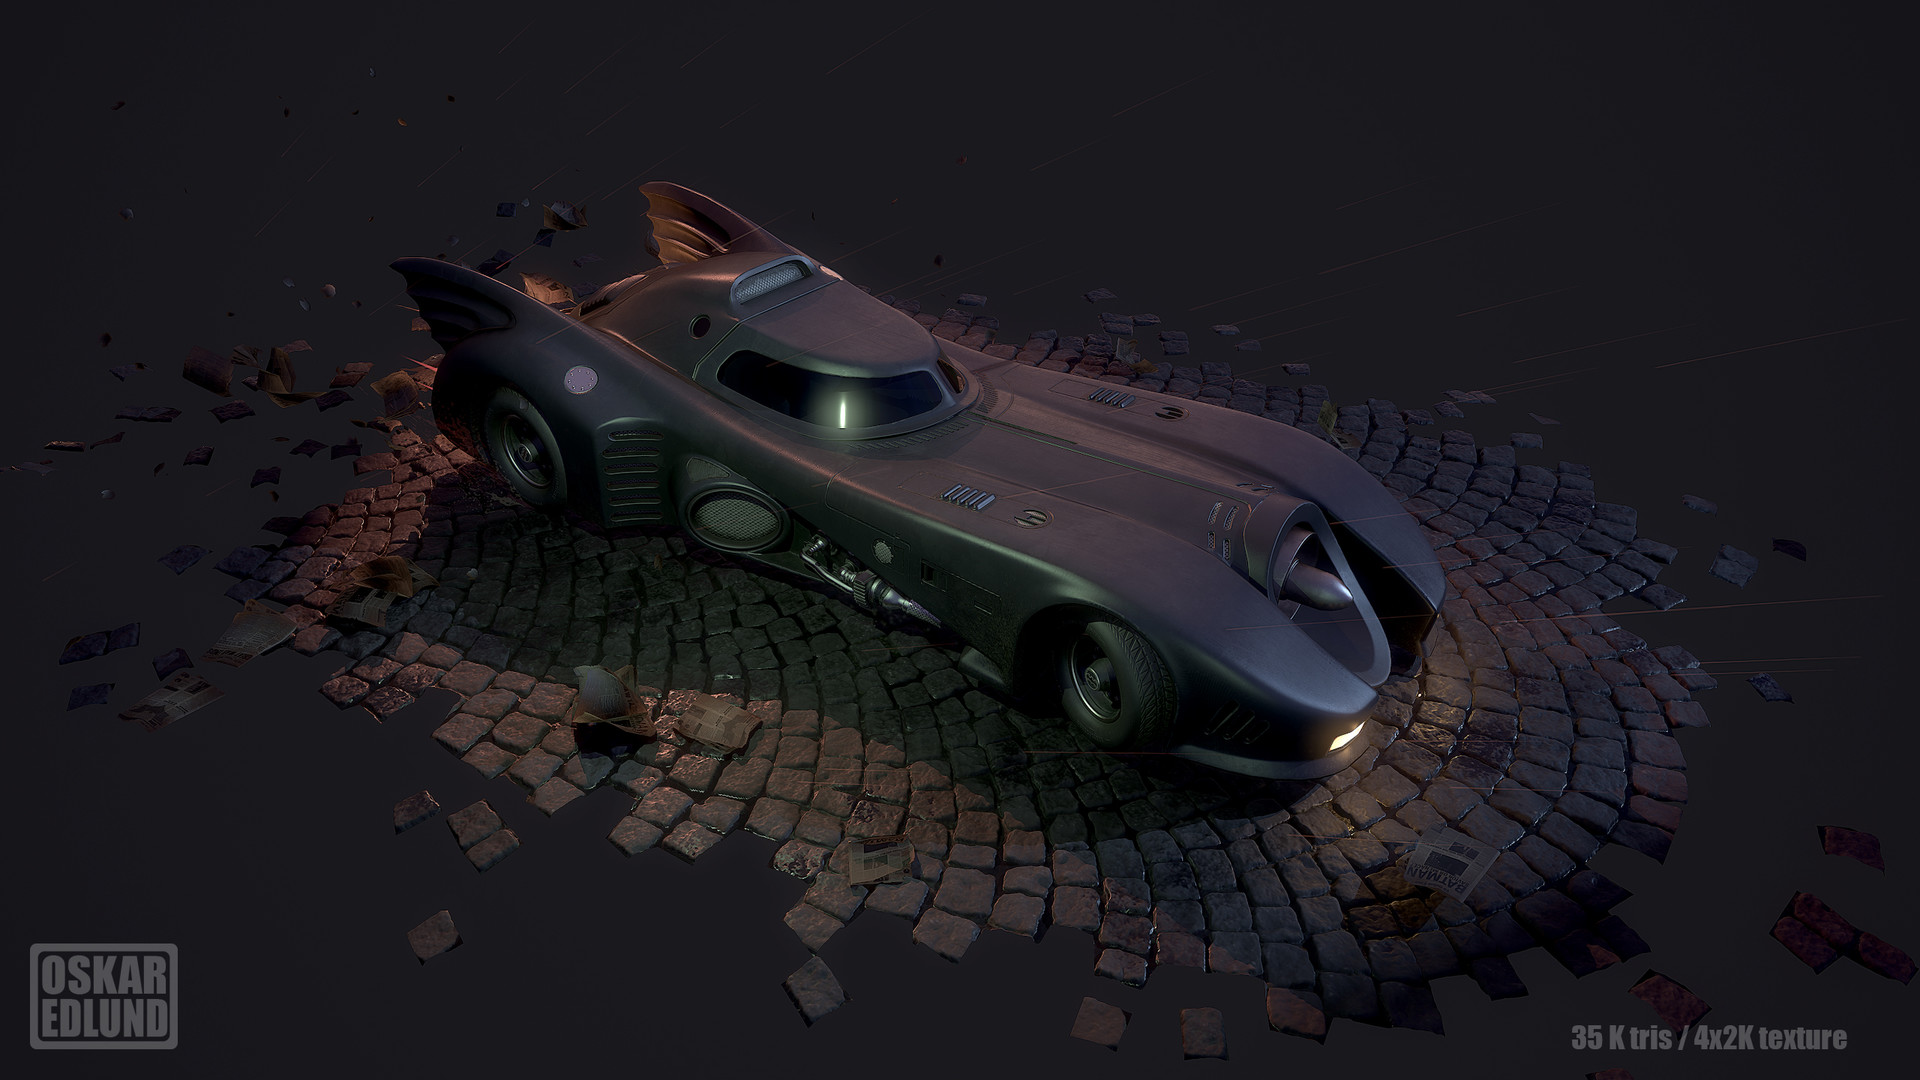 Oskar edlund batmobile 02